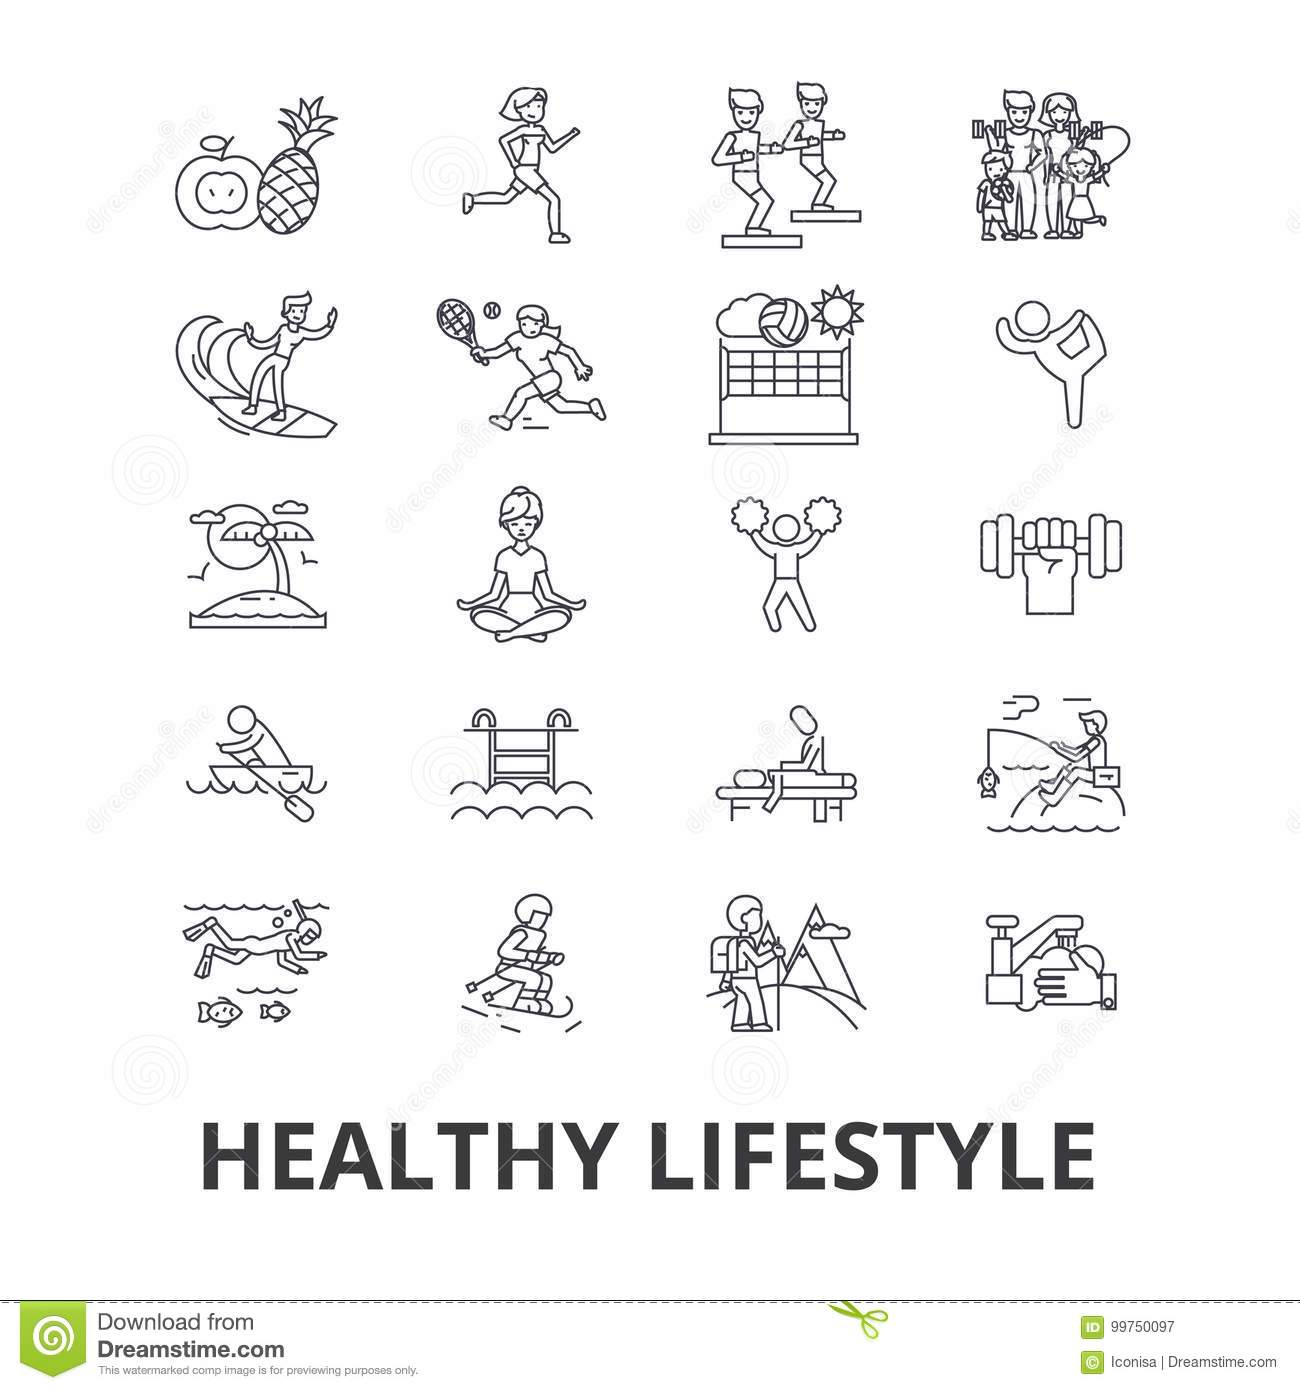 Healthy lifestyle, active living, natural food, healthcare, wellness, exercise line icons. Editable strokes. Flat design